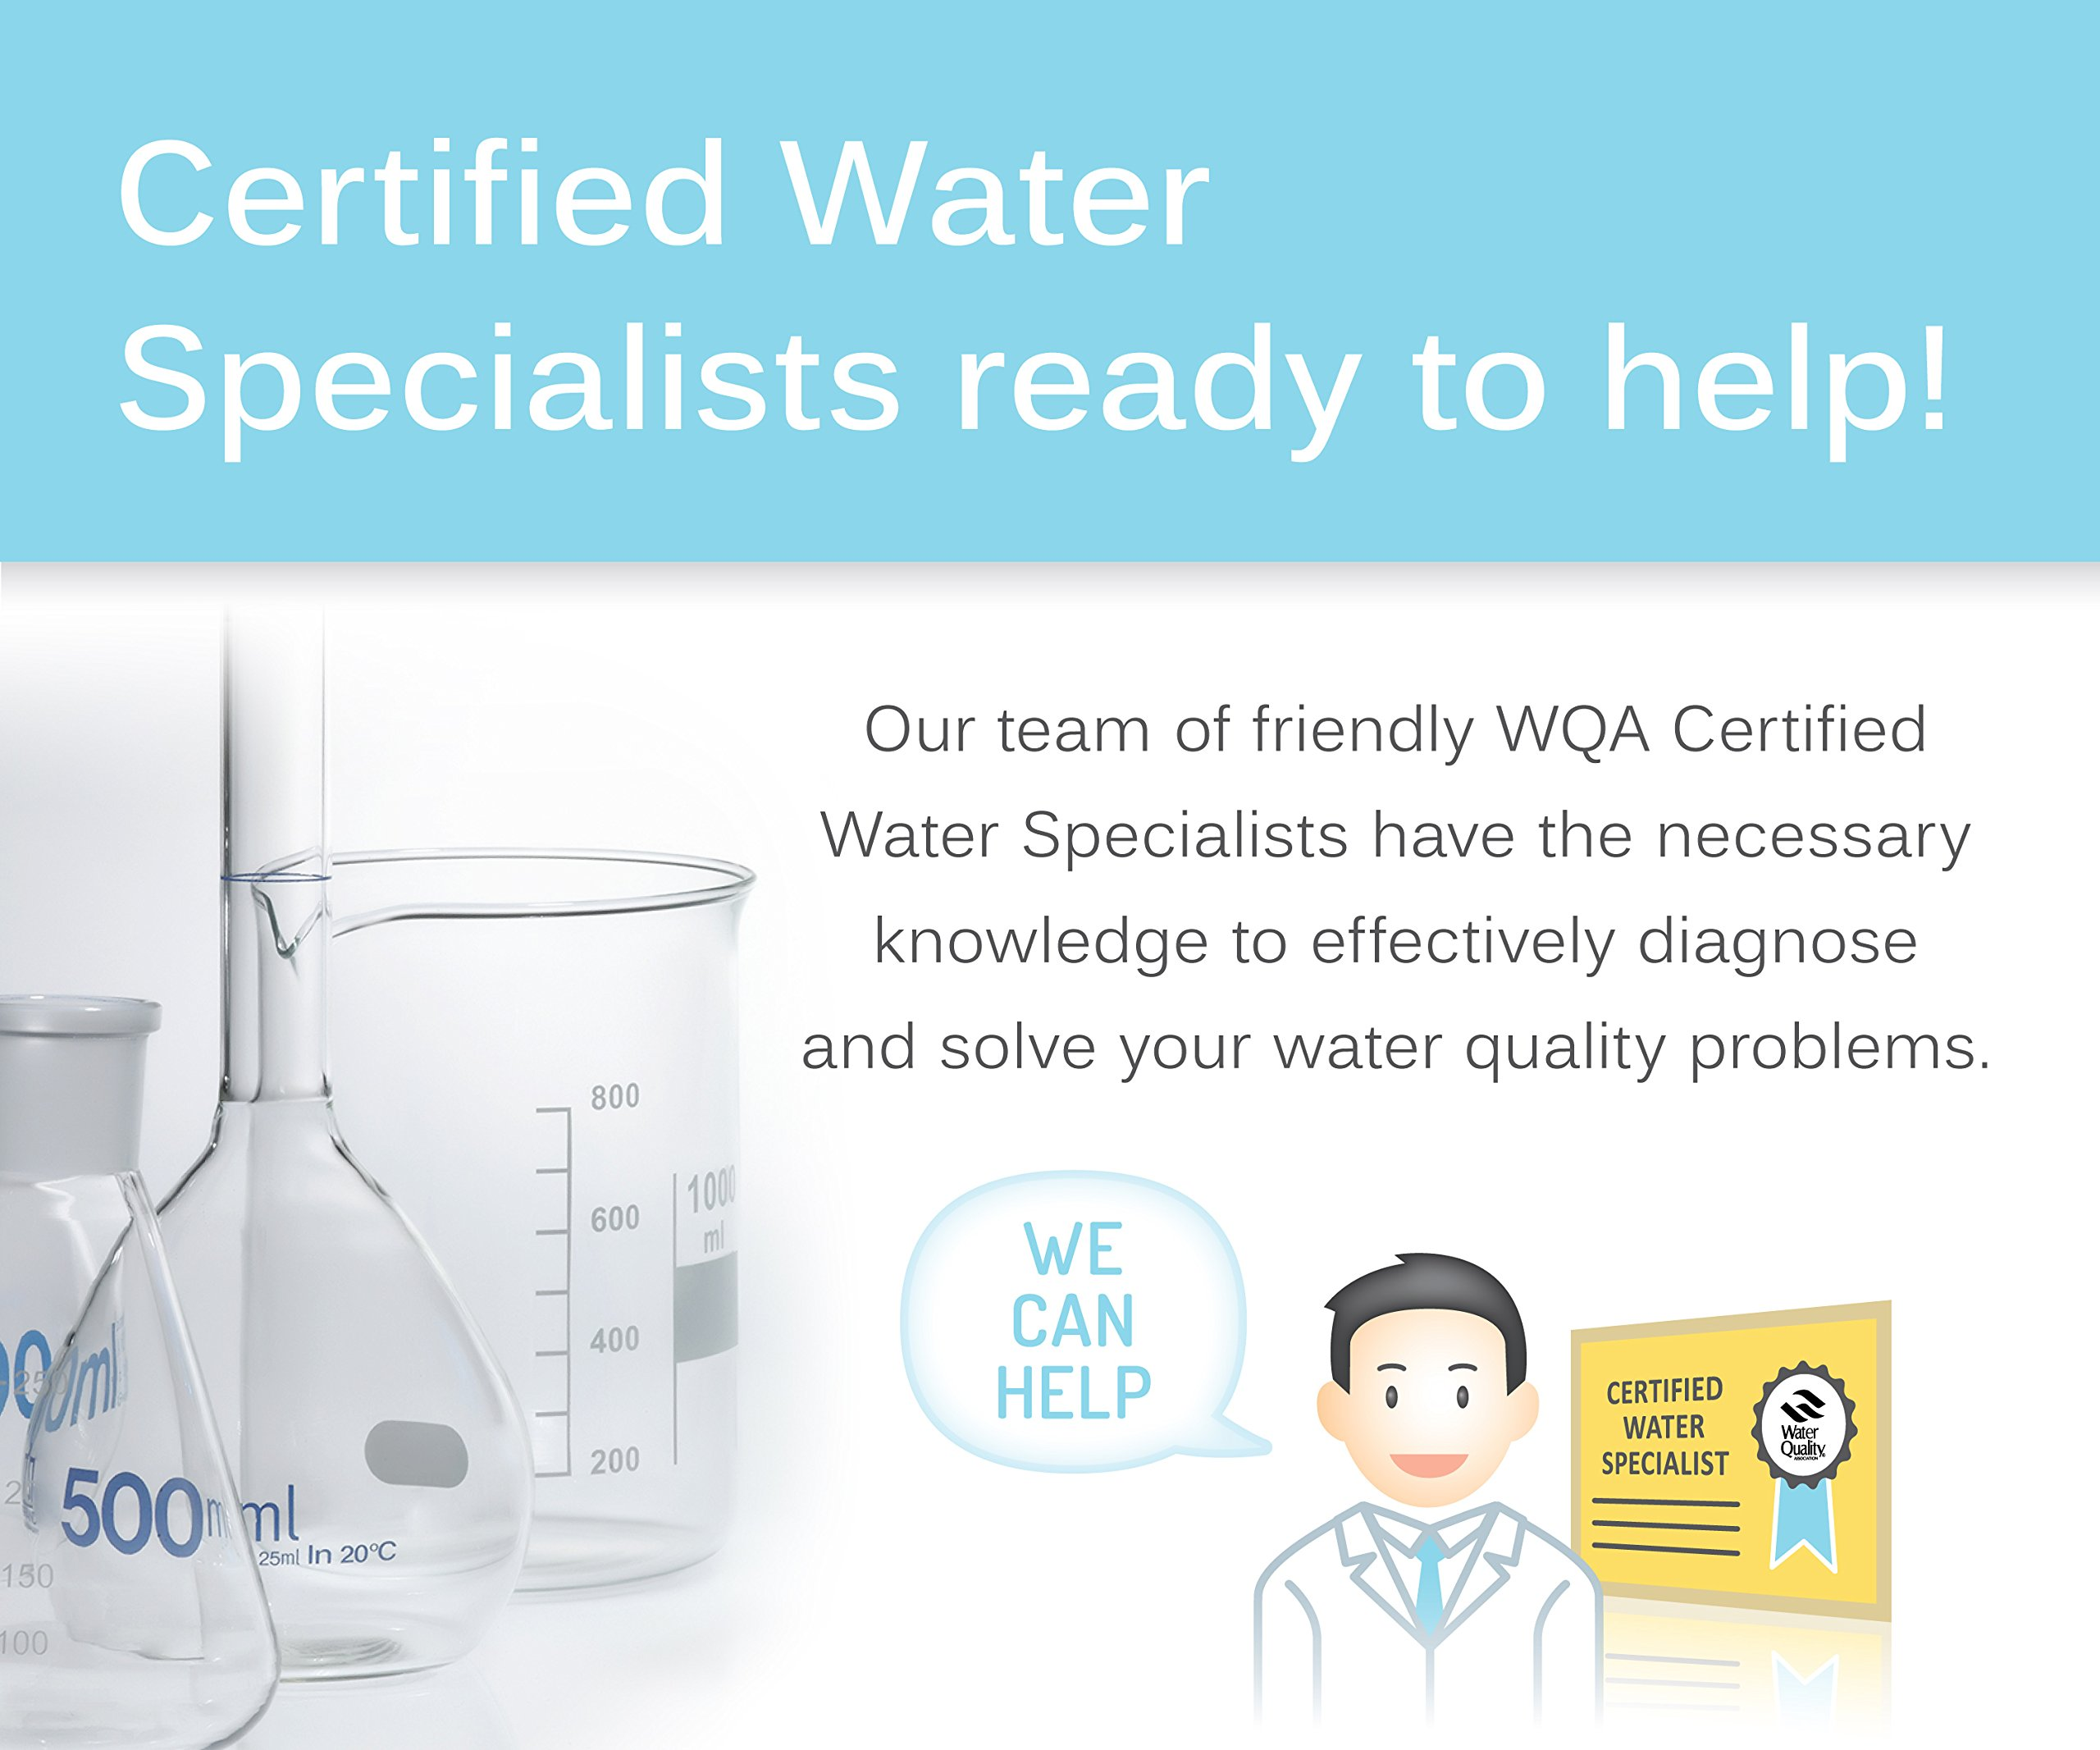 APEC Water Systems RO-90 Ultimate Series Top Tier Supreme Certified High Output 90 GPD Ultra Safe Reverse Osmosis Drinking Water Filter System, Chrome Faucet by APEC Water Systems